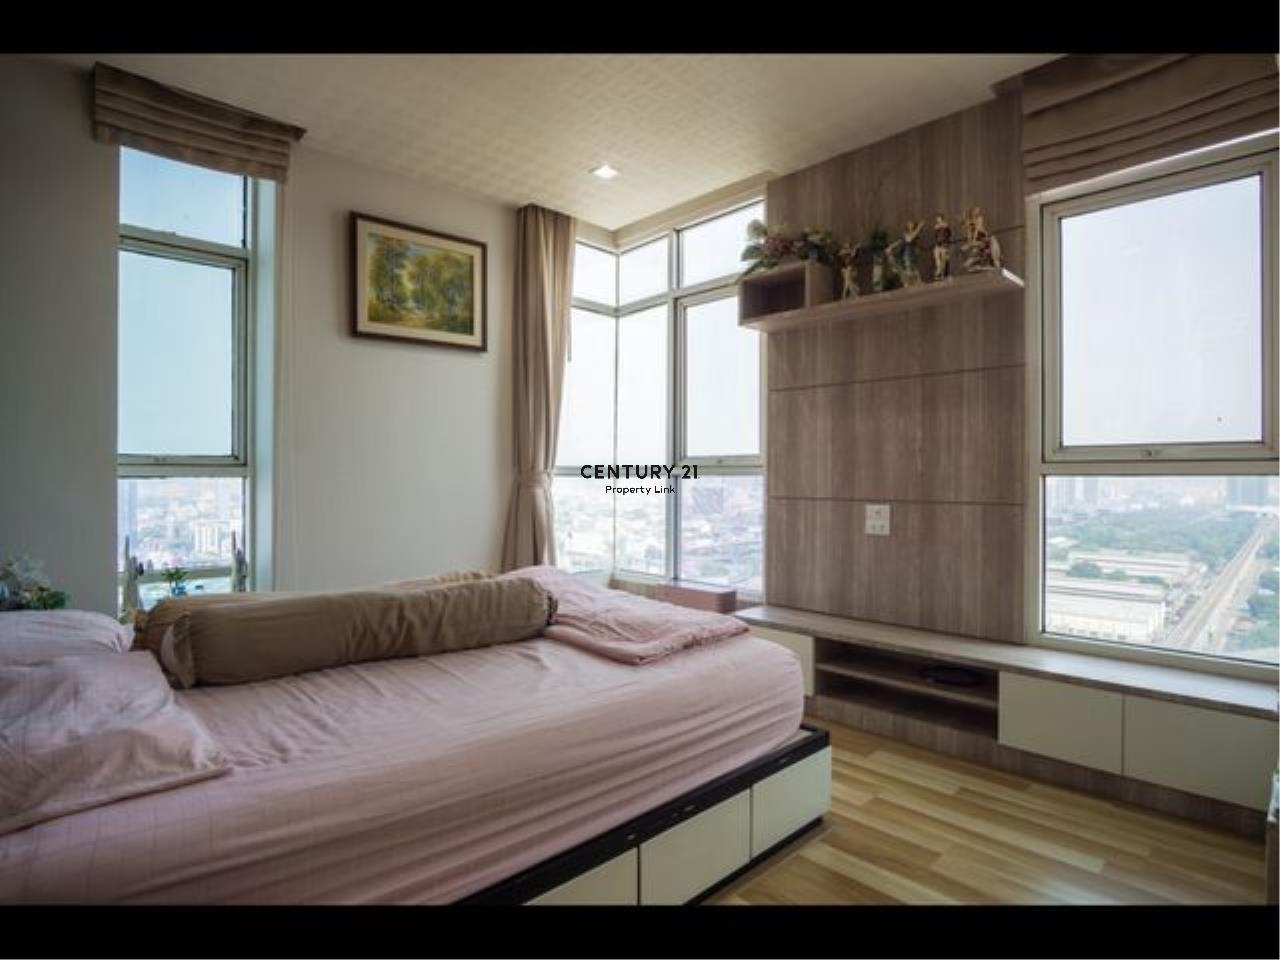 Century21 Property Link Agency's 39-CC-61435 Ideo Verve Ratchaprarop Room For Sale 2 Bedroom Nearby @ Ratchaprarop Airport Rail Link BTS Phaya Thai Sale price 9.7 MB.   3